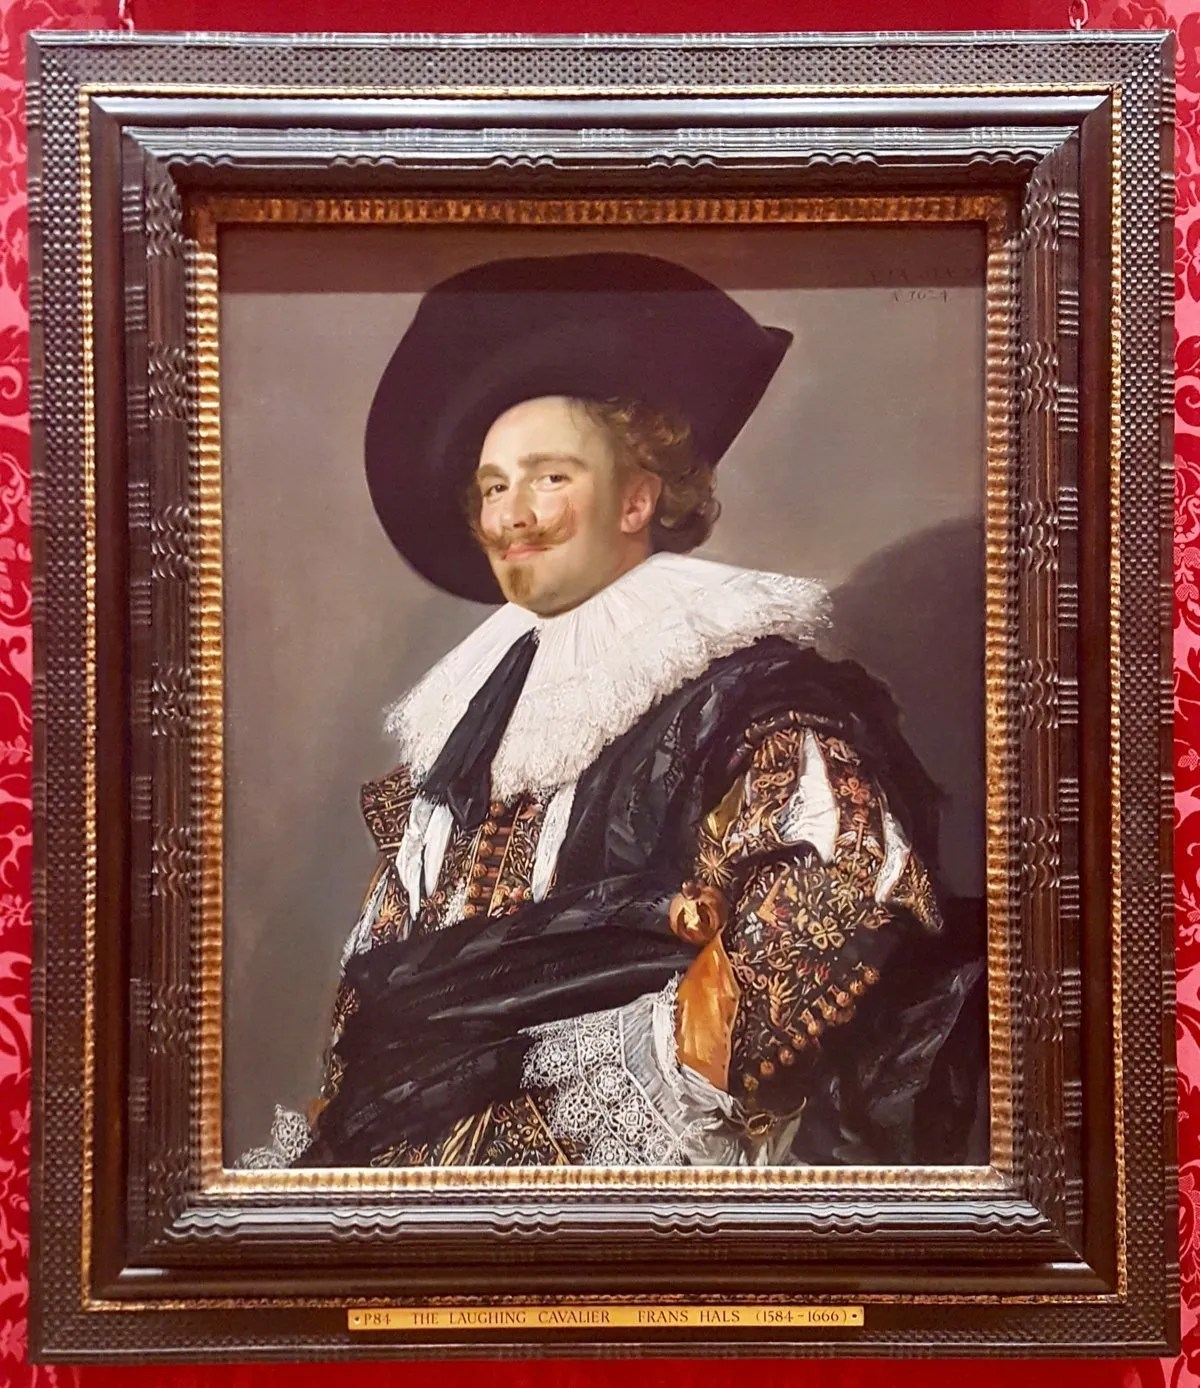 Laughing Cavalier painting by Frans Hals